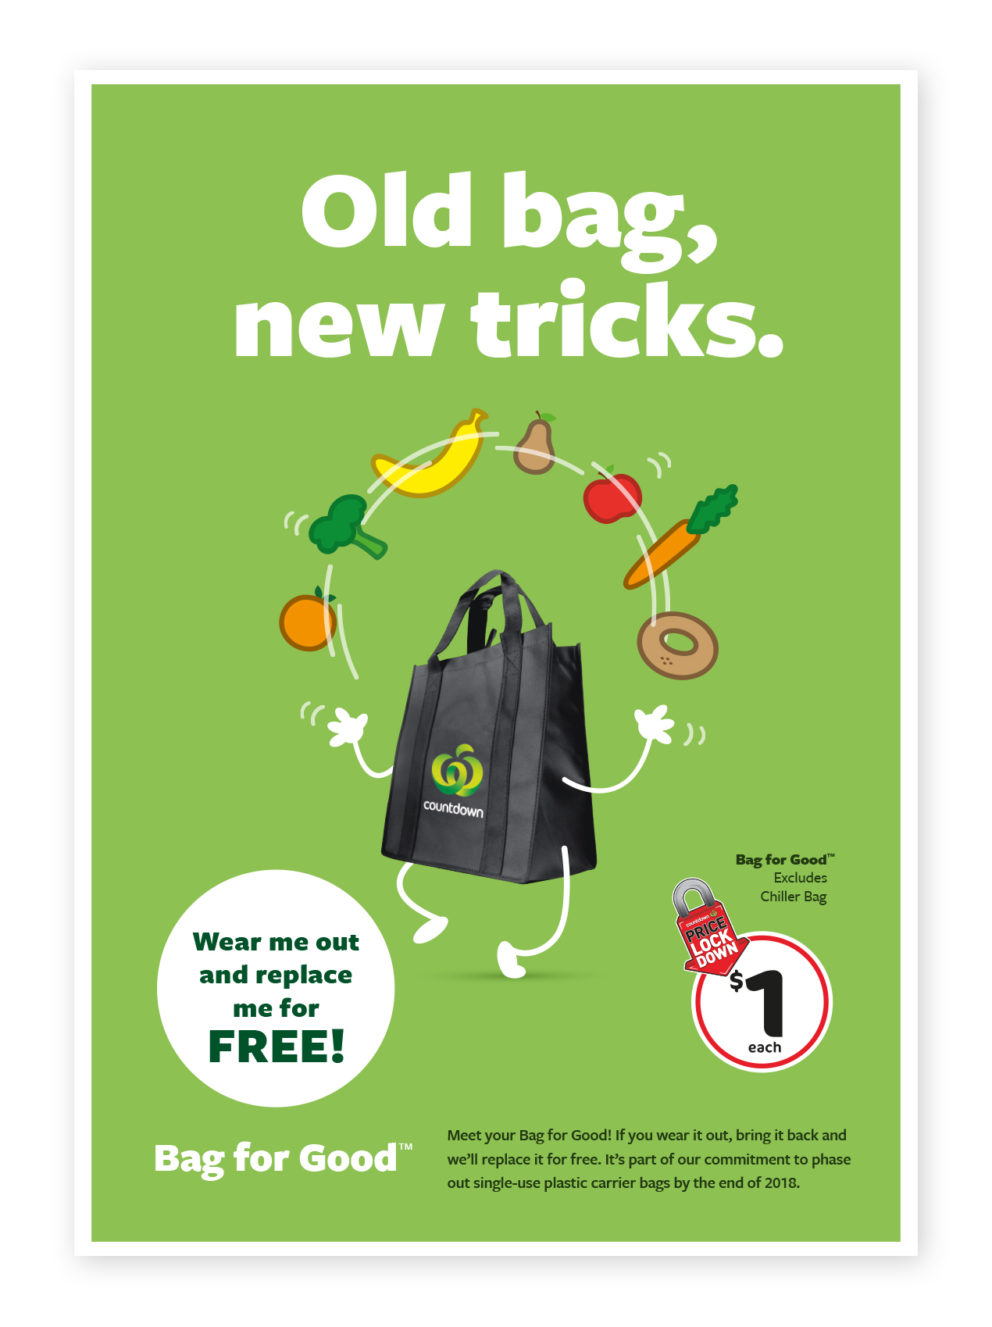 Old bag, new tricks - Bag for good TM